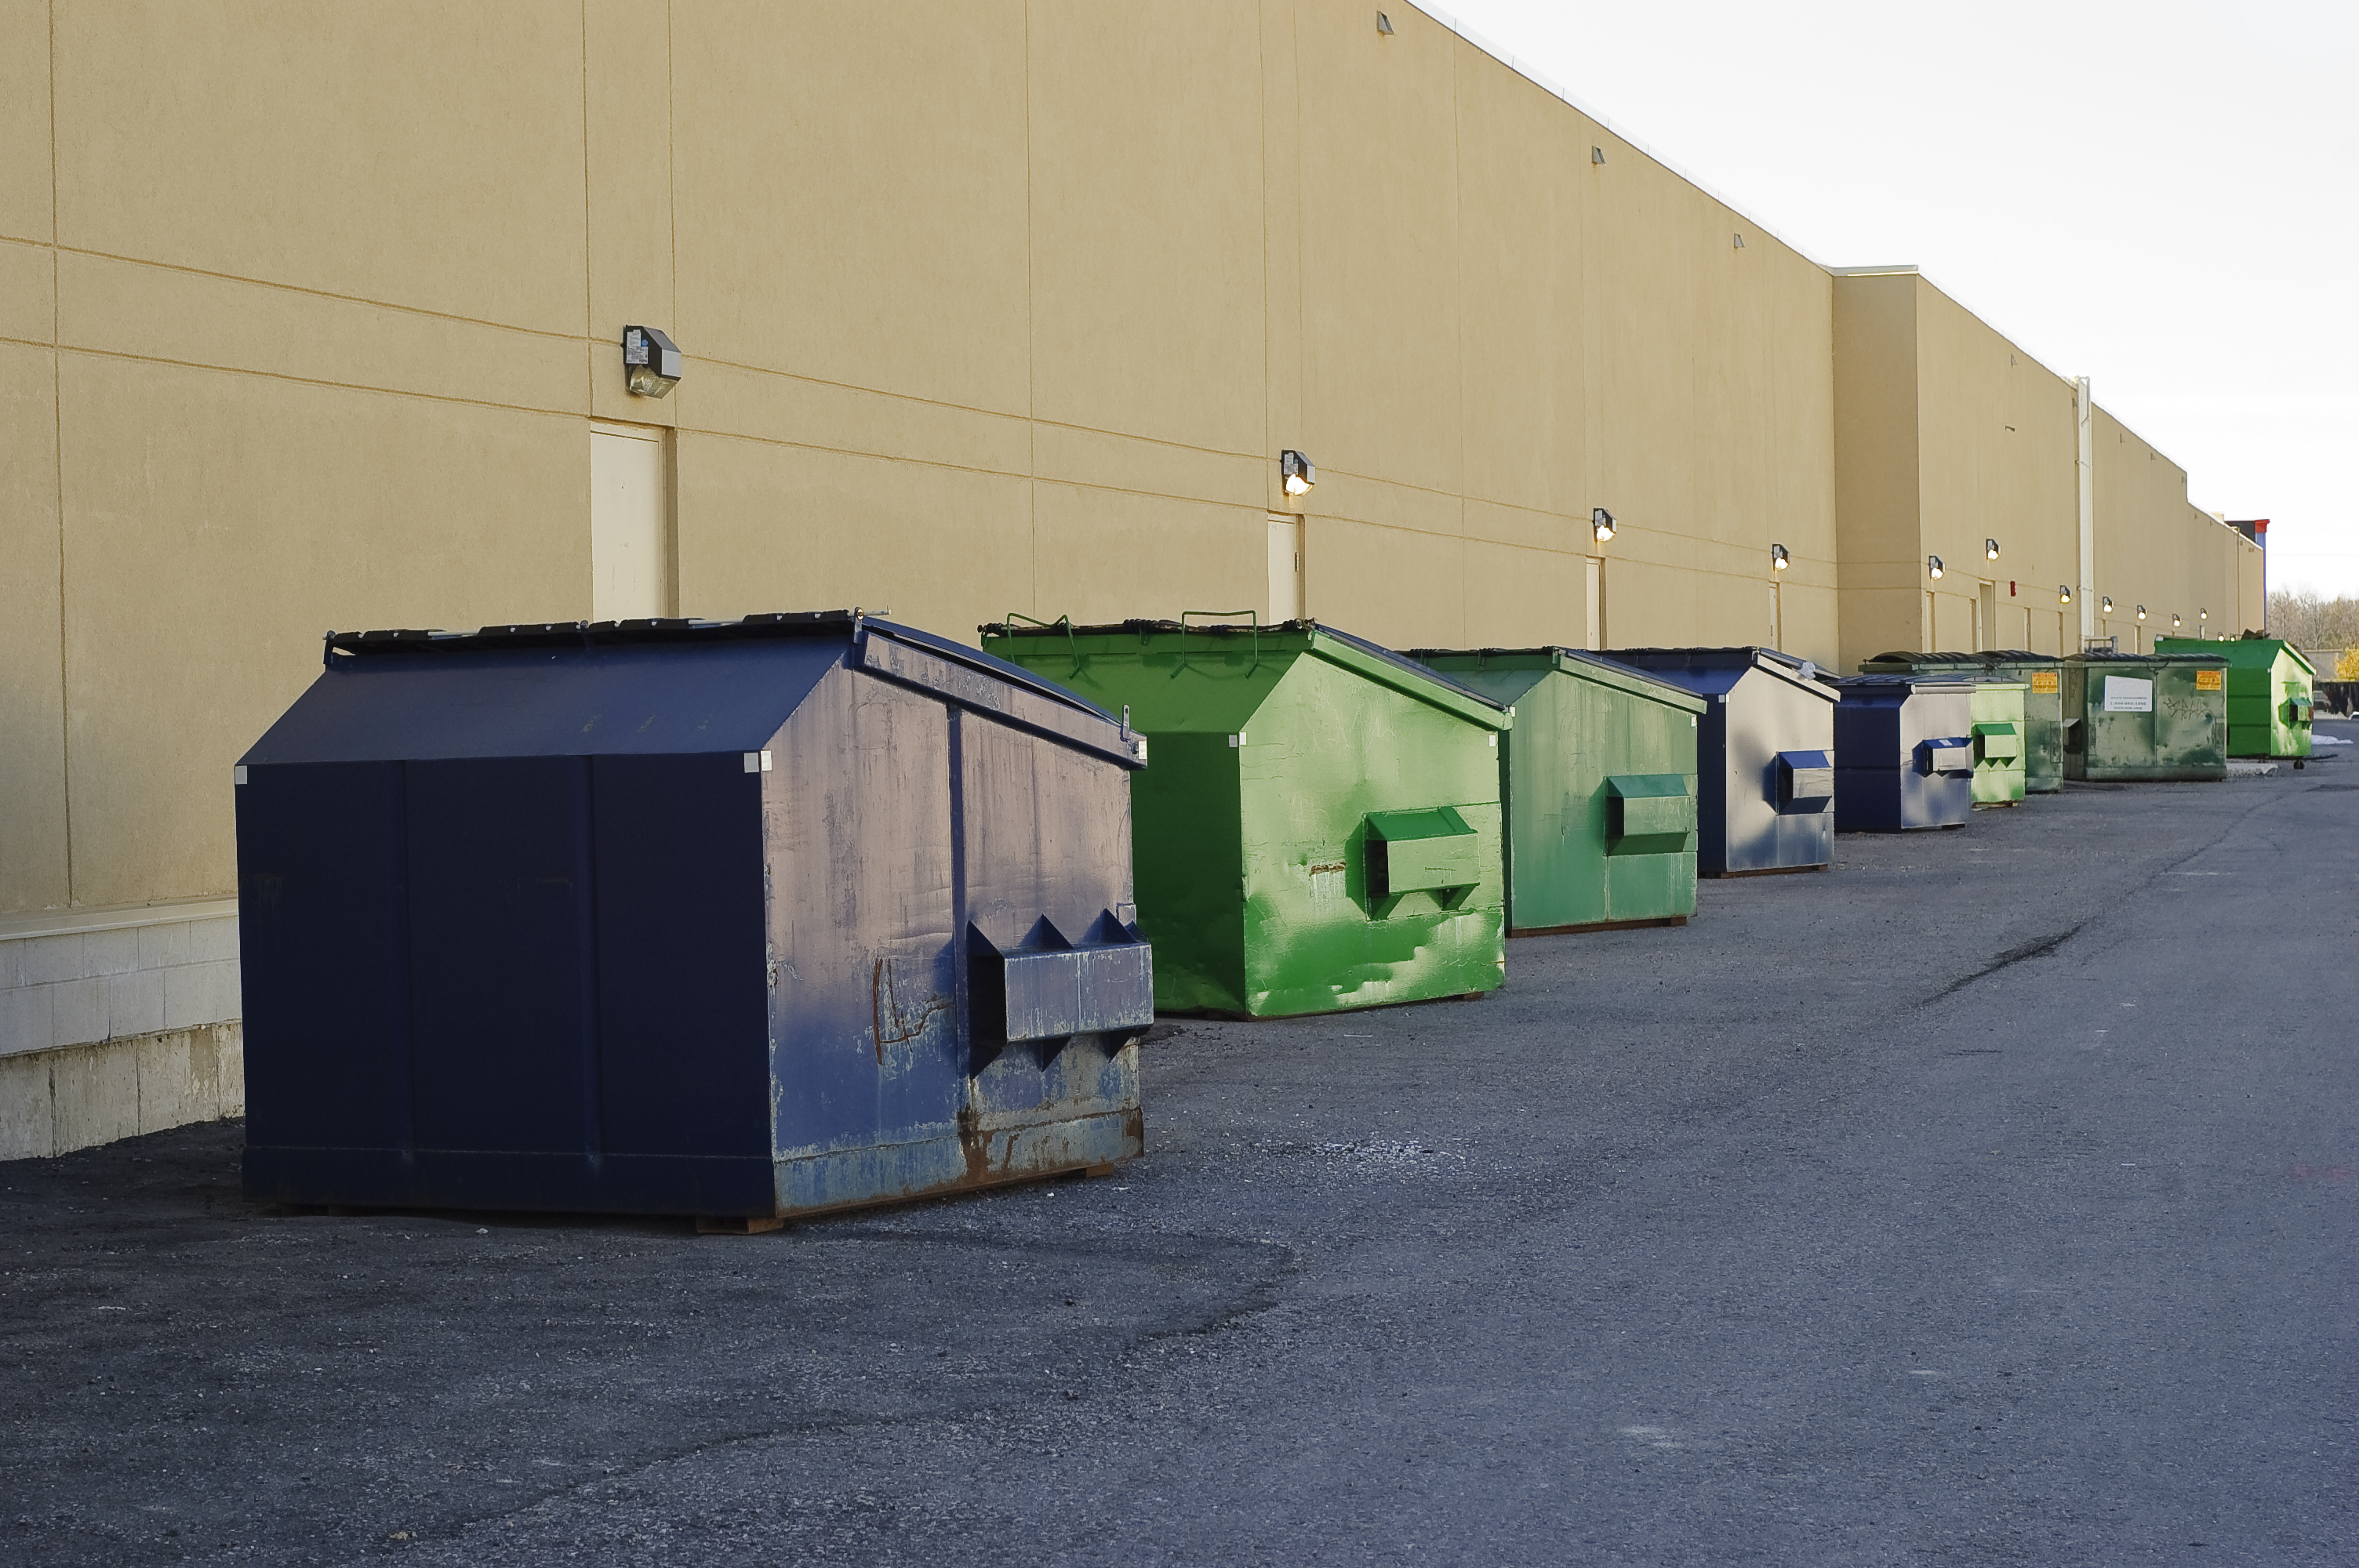 What Size of Dumpsters Do I Need?